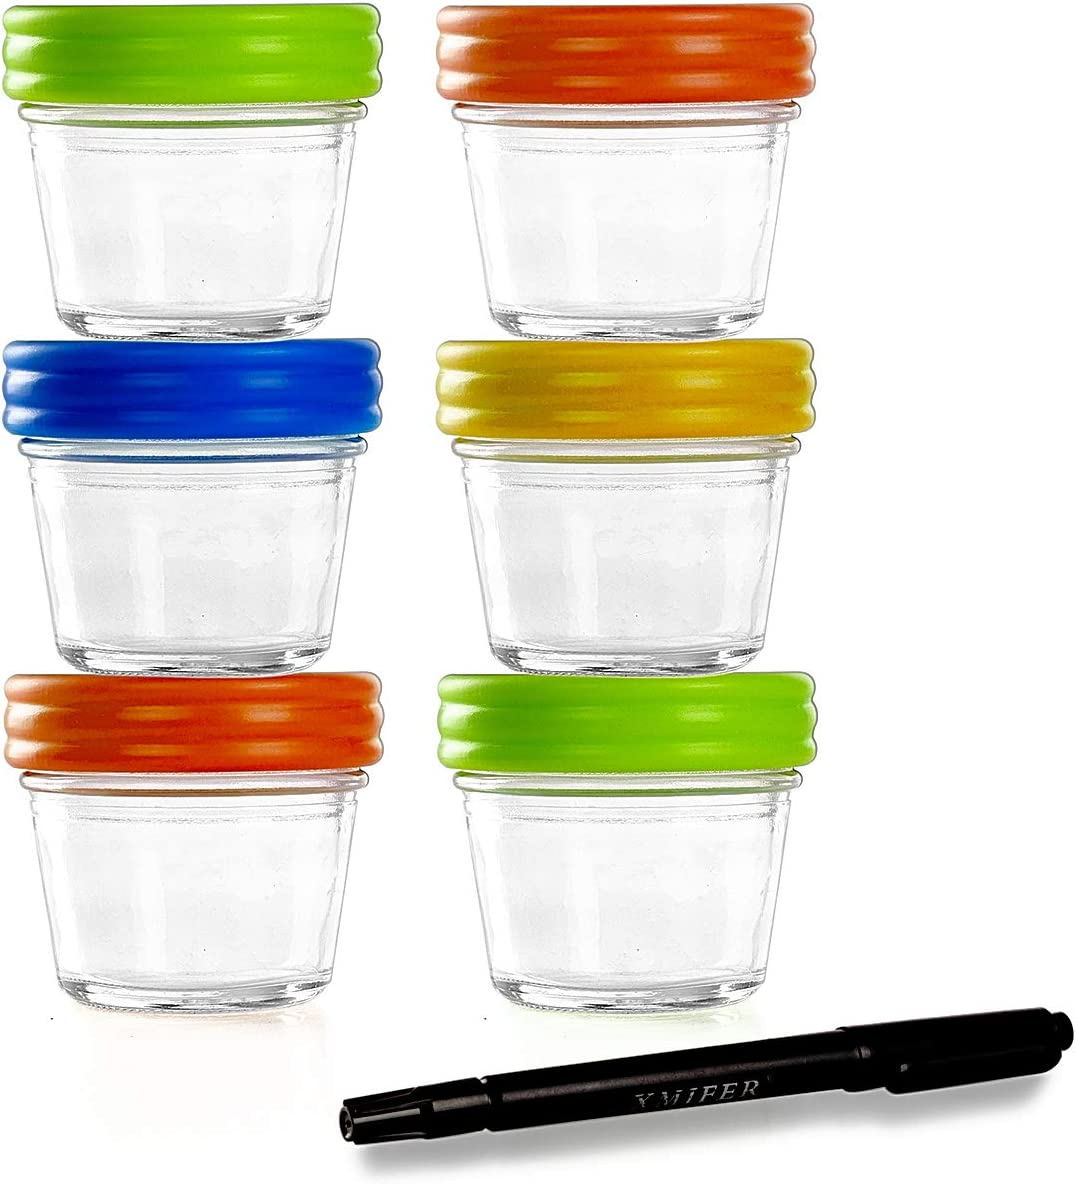 Glass Containers for Baby Food Storage Set Contains 6 Small Reusable 4oz Jars with Airtight Lids Safely Freeze your Homemade